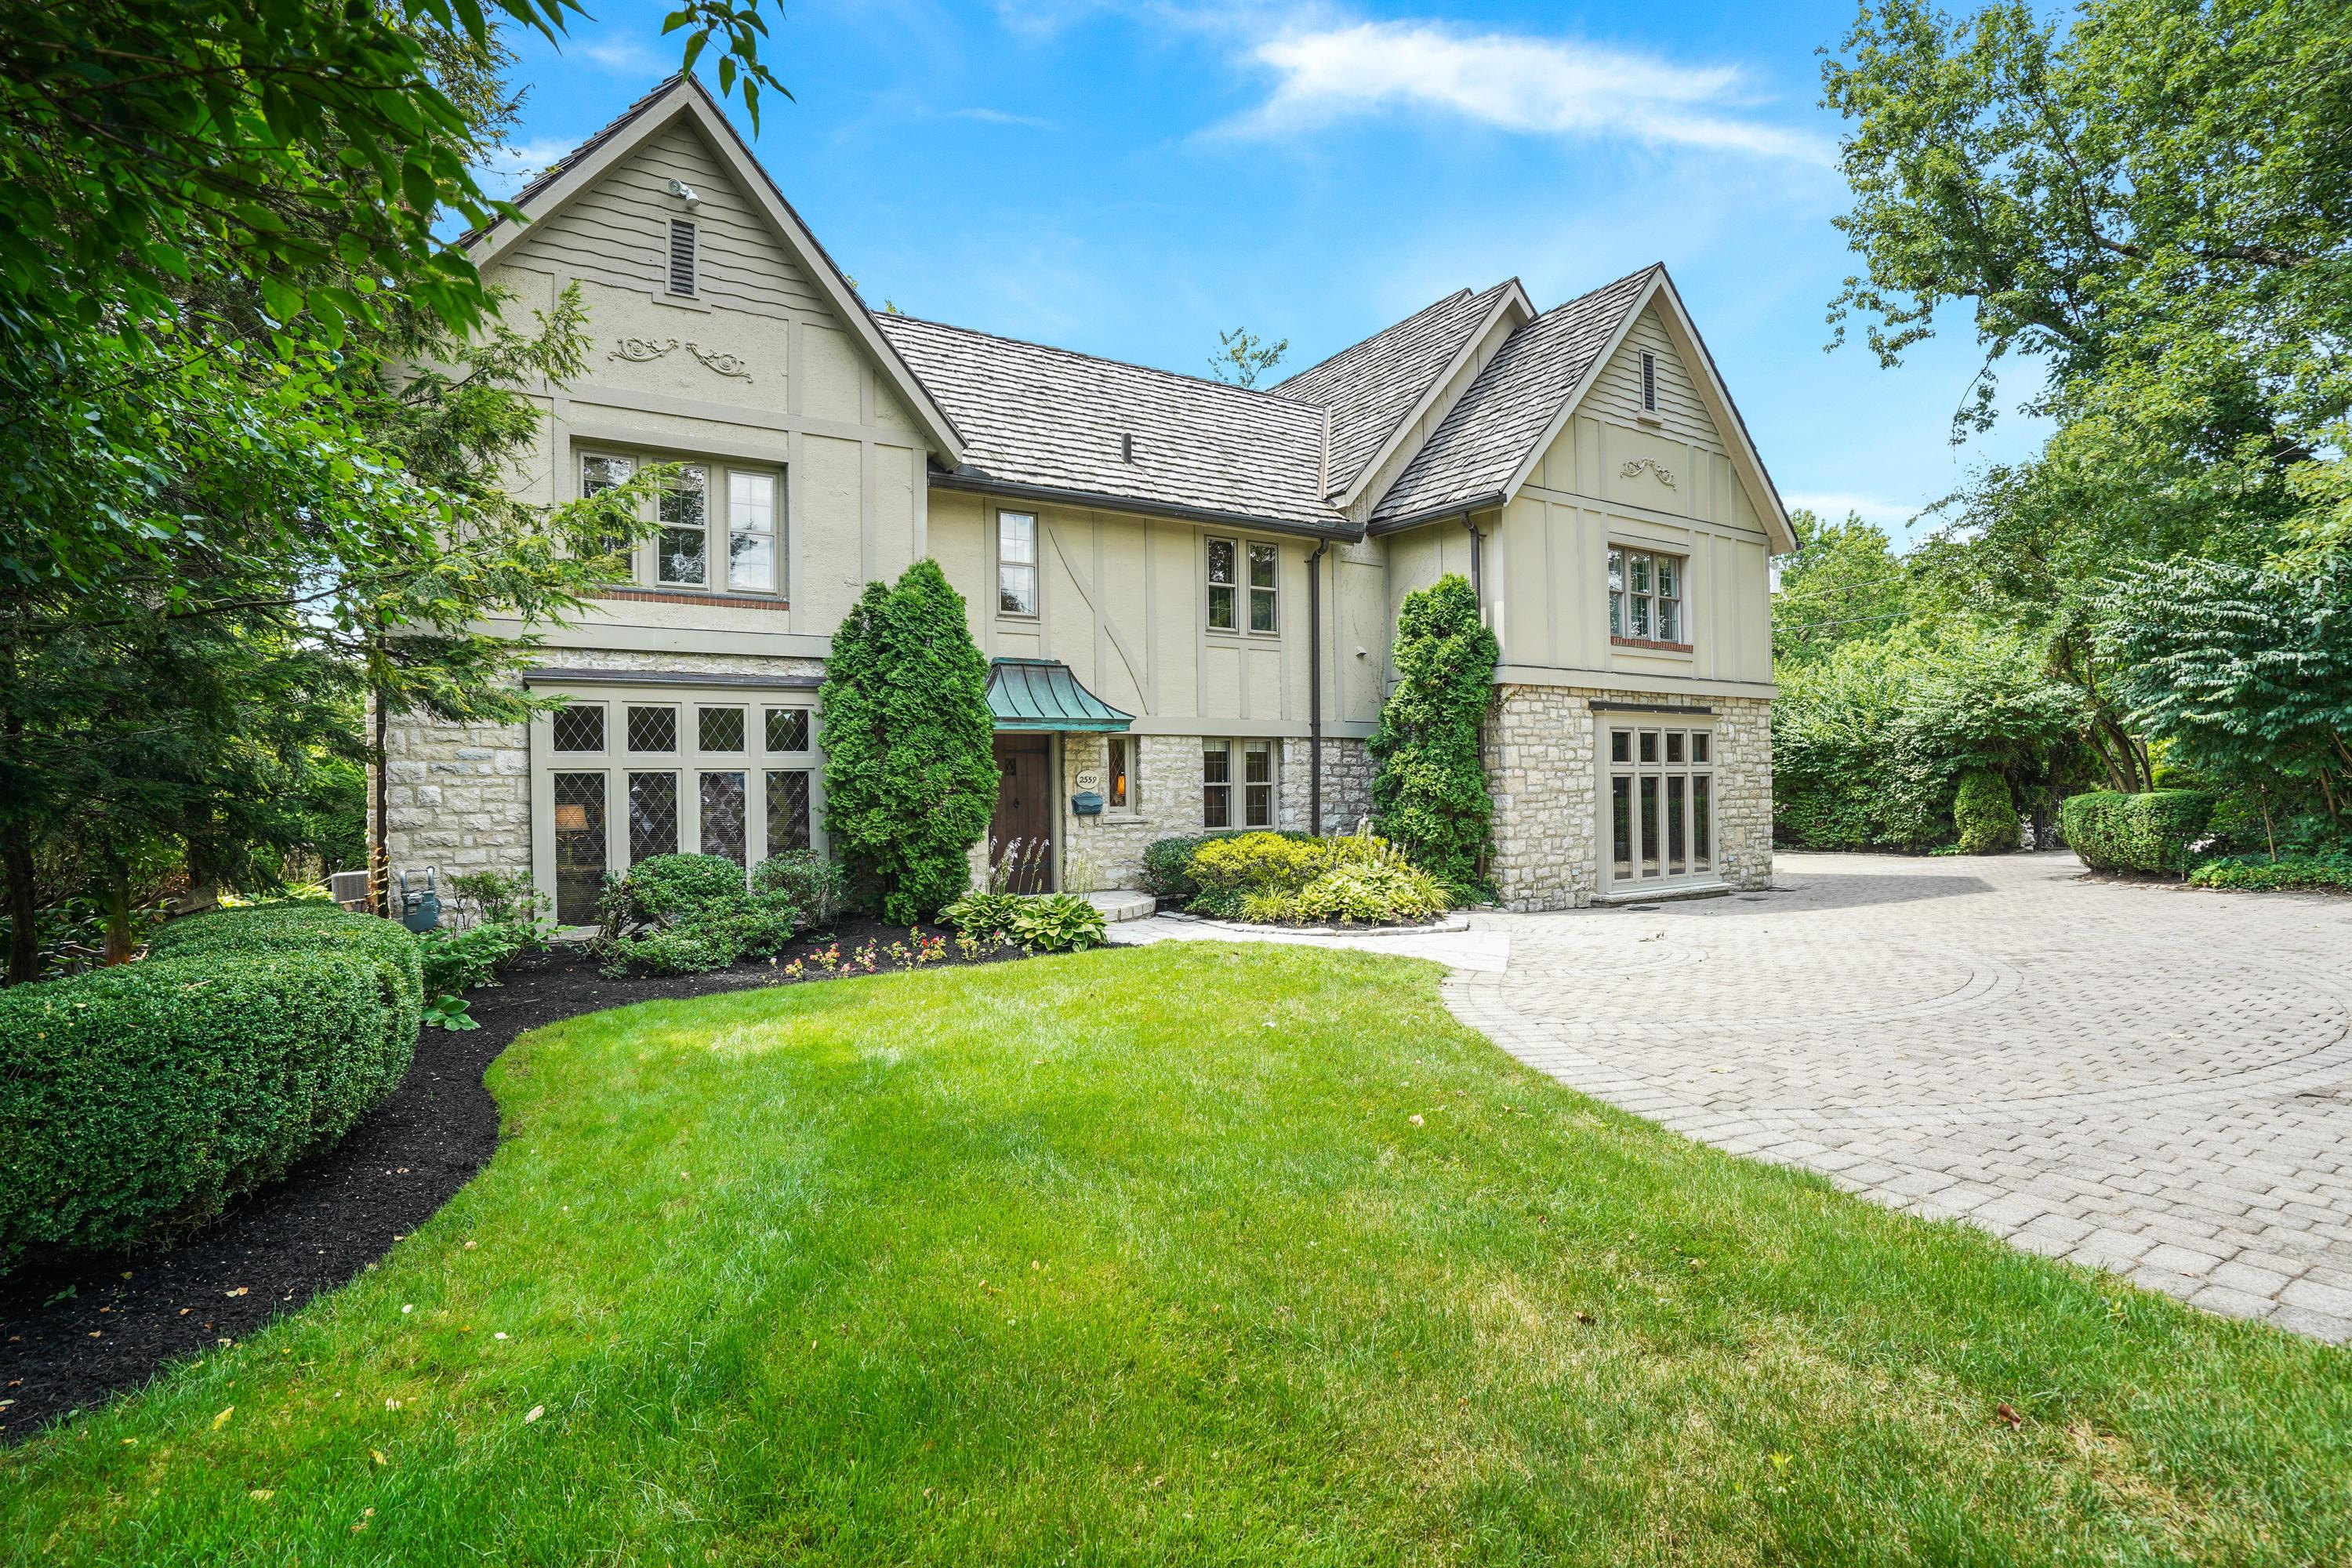 Photo of 2559 Tremont Road, Upper Arlington, OH 43221